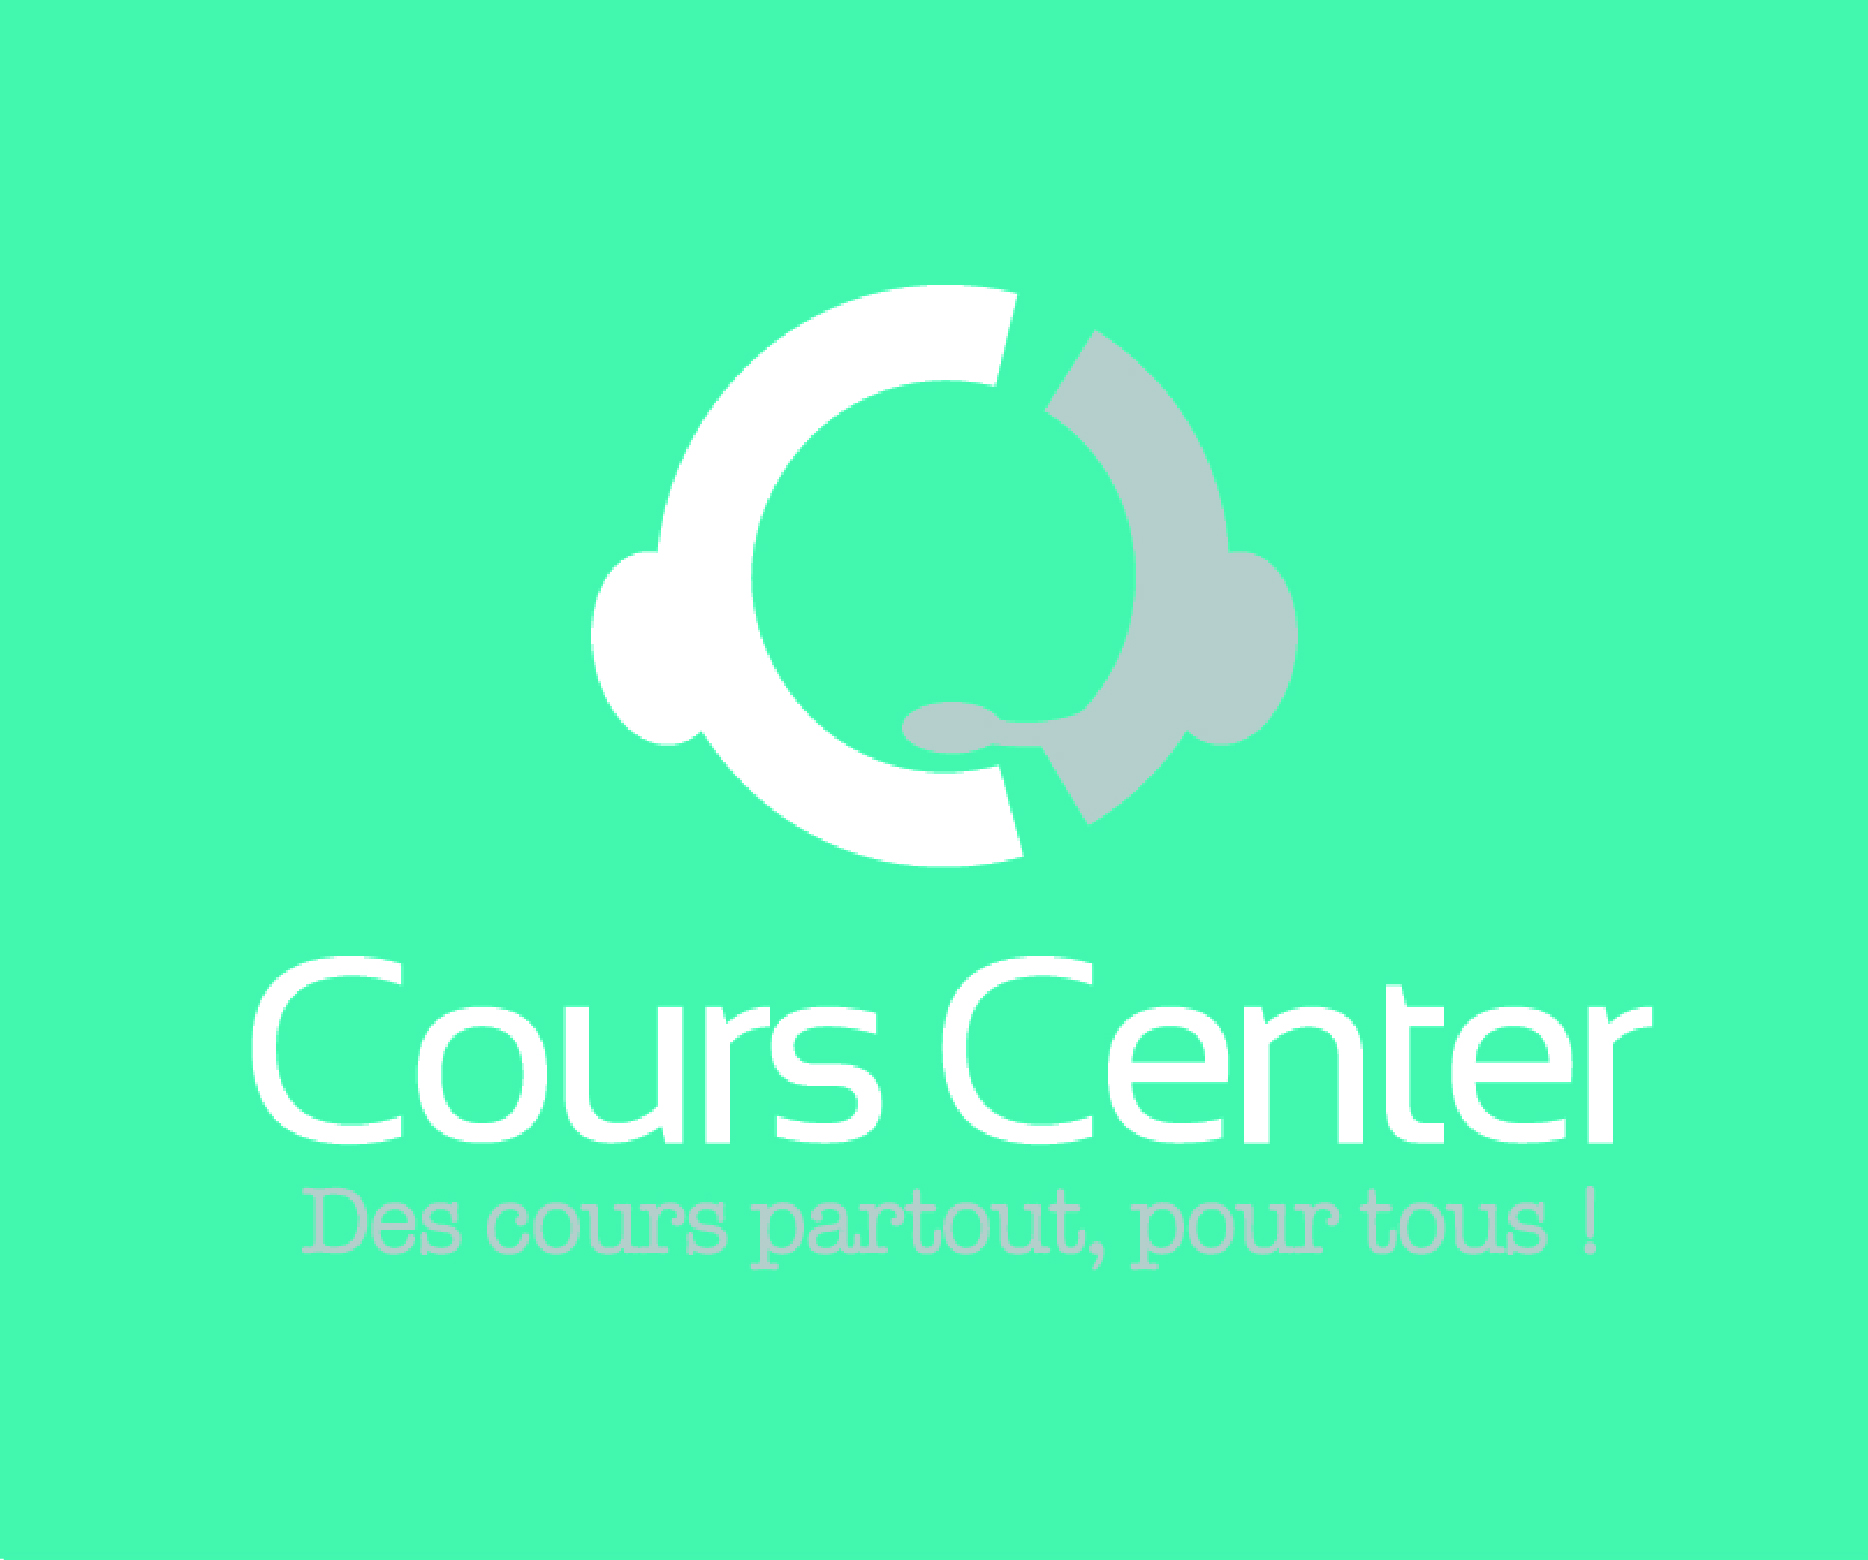 logo_courscenter.jpg